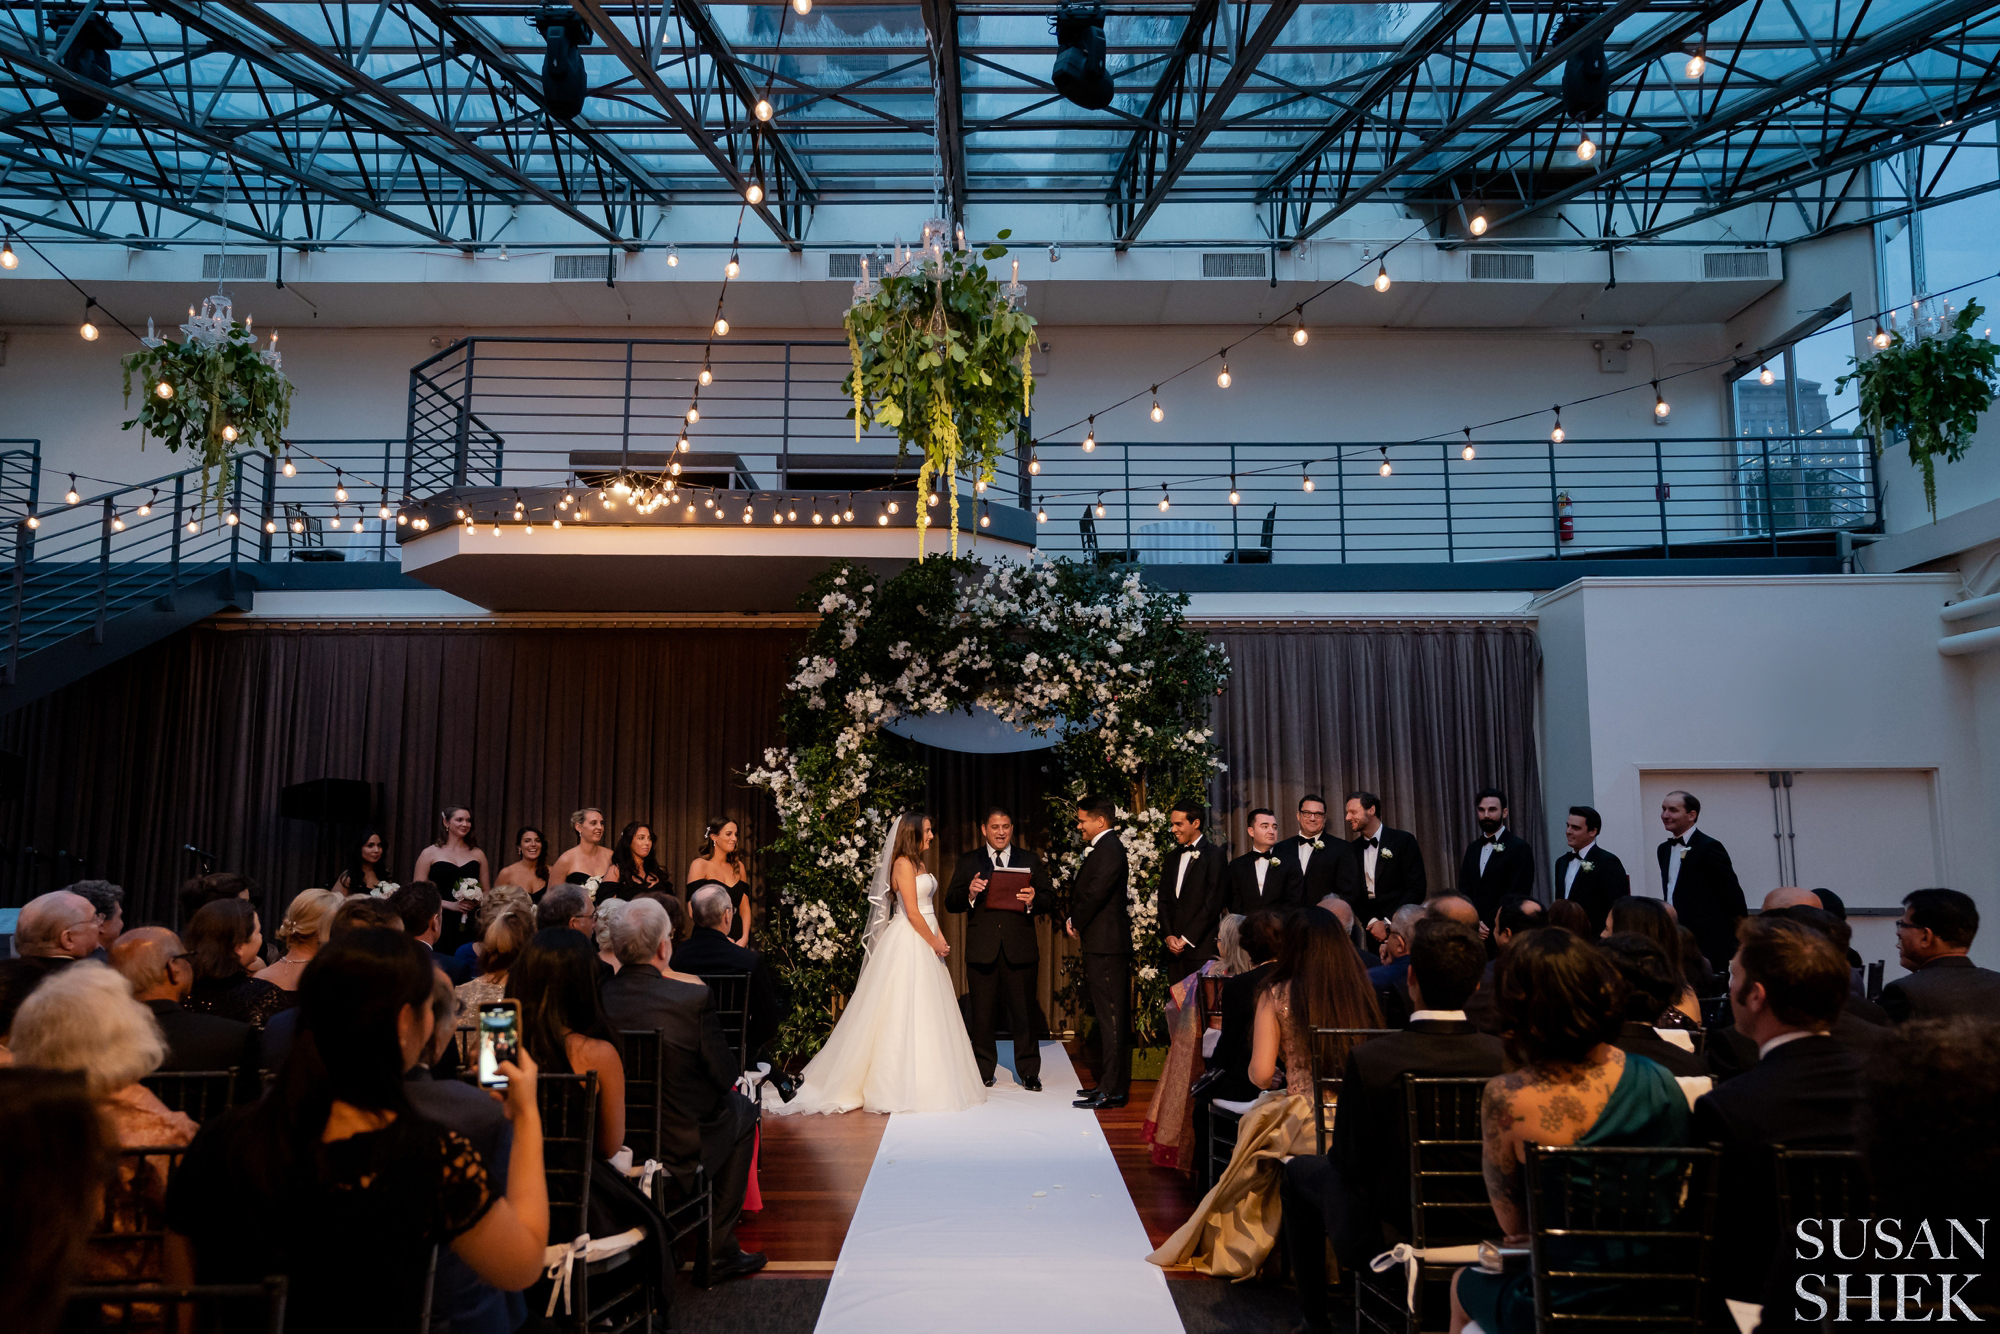 Ceremony Photo Indoors at Tribeca Rooftop